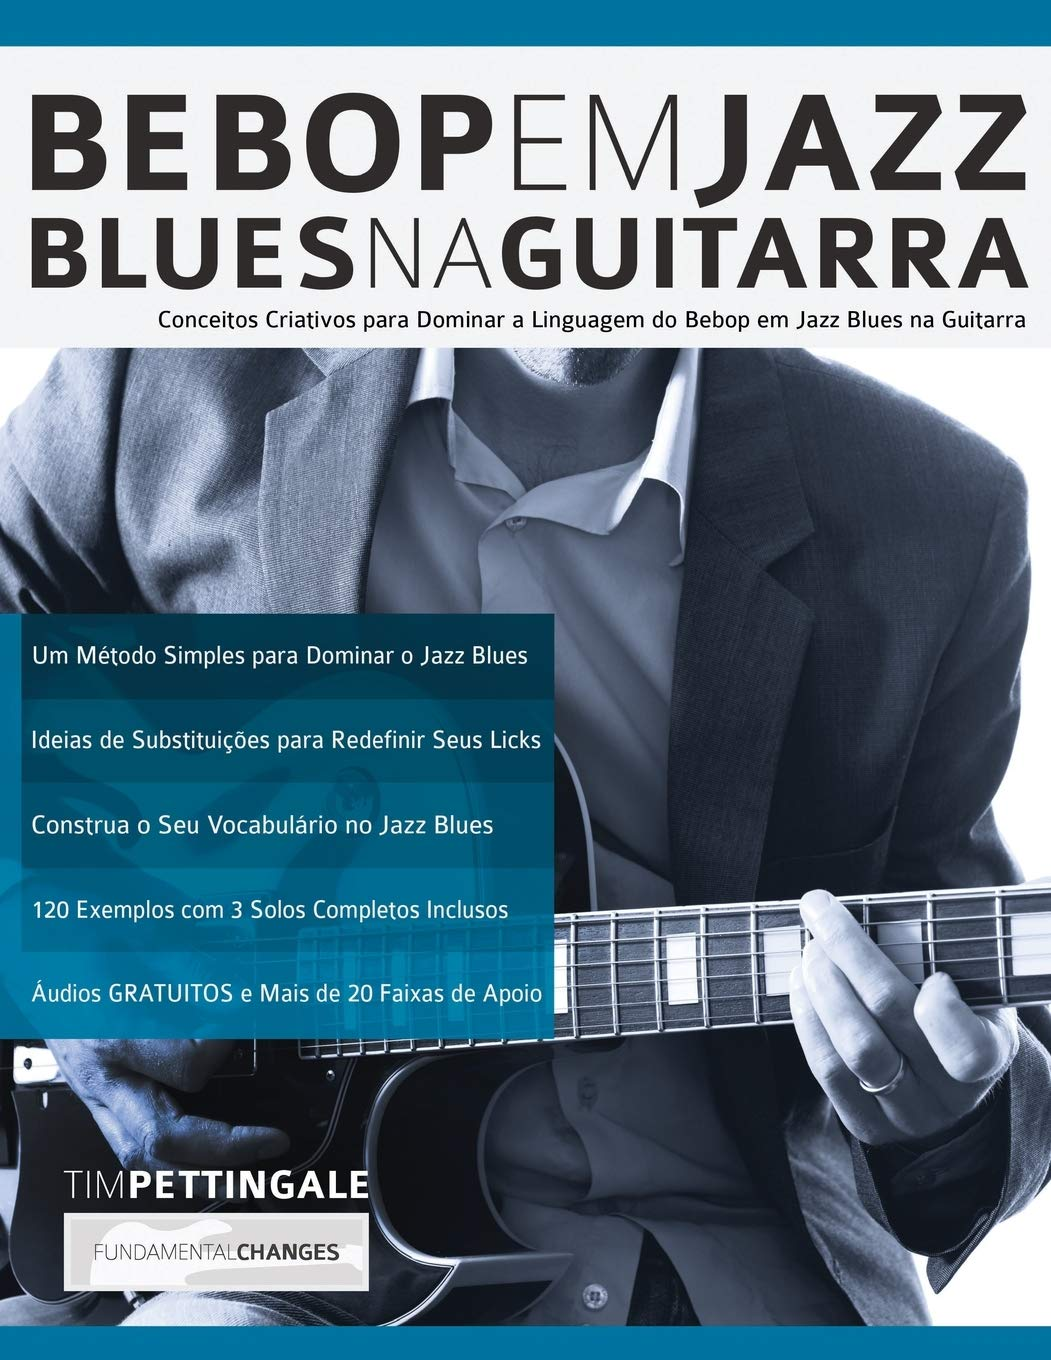 Bebop em Jazz Blues na Guitarra: Conceitos criativos para dominar a linguagem do Bebop em Jazz Blues na Guitarra Tocar Jazz Guitarra: Amazon.es: Pettingale, Tim, Alexander, Joseph: Libros en idiomas extranjeros